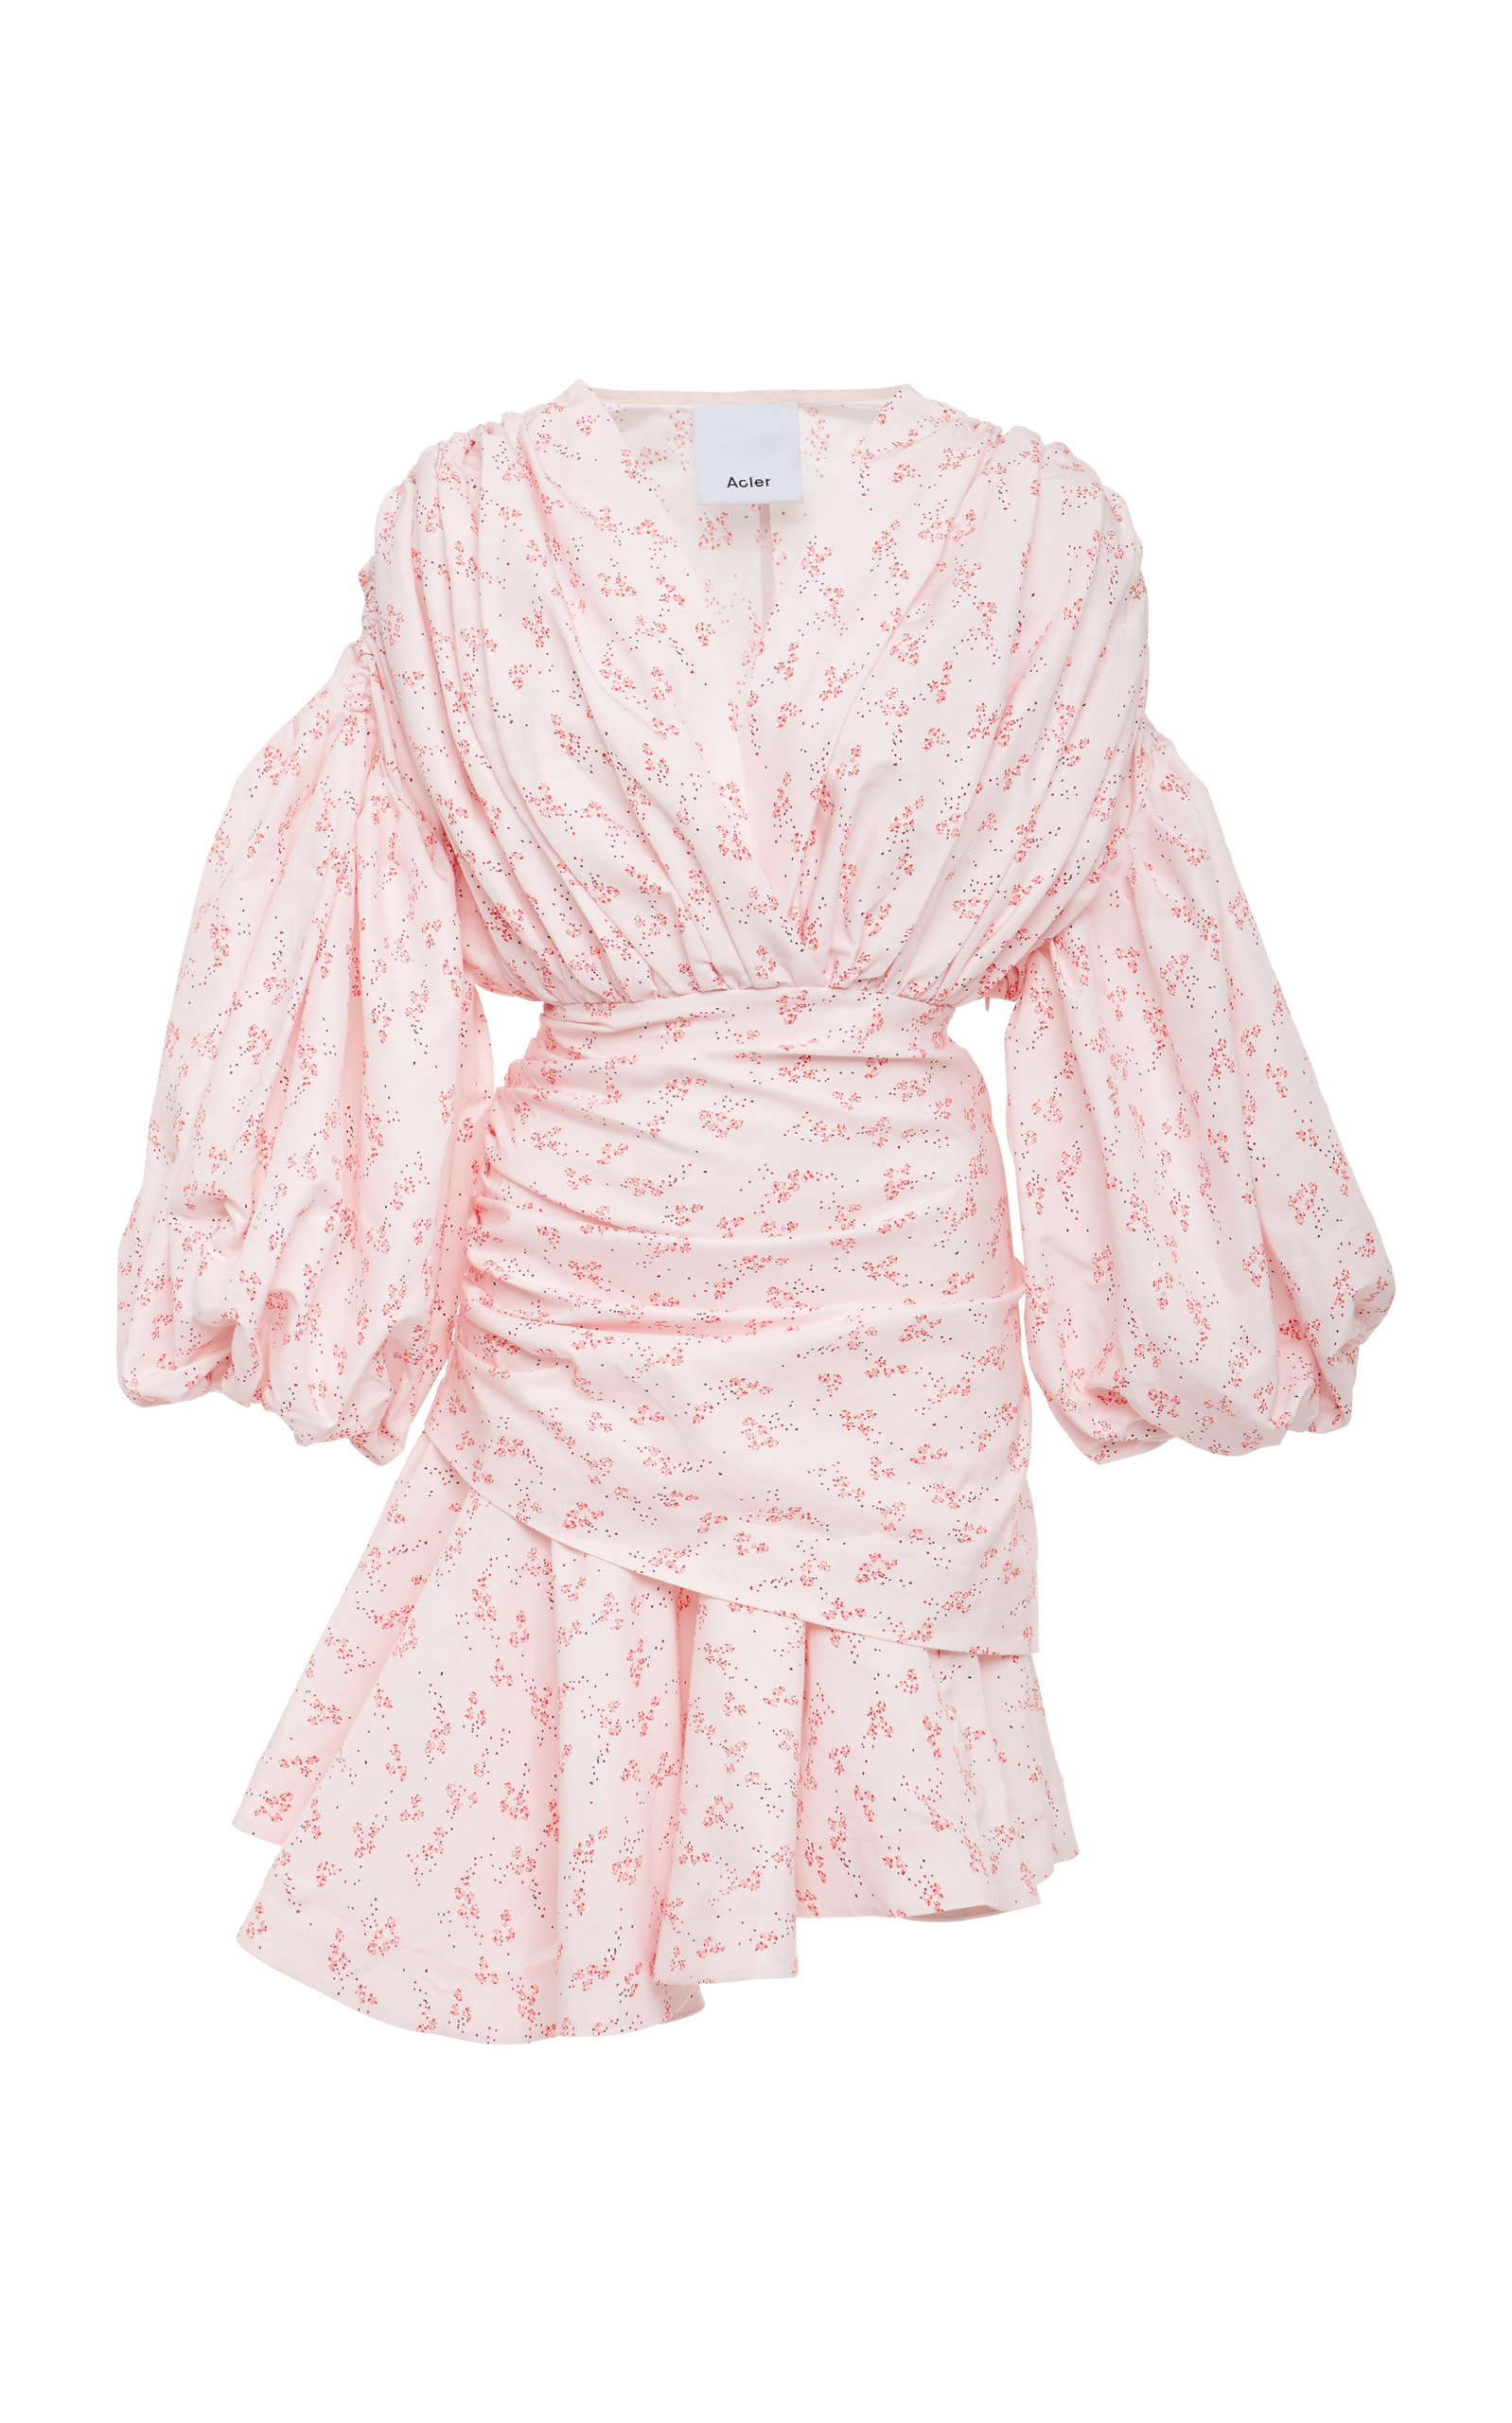 ACLER Dorset Draped Floral-Print Cotton And Silk-Blend Mini Dress, Pink